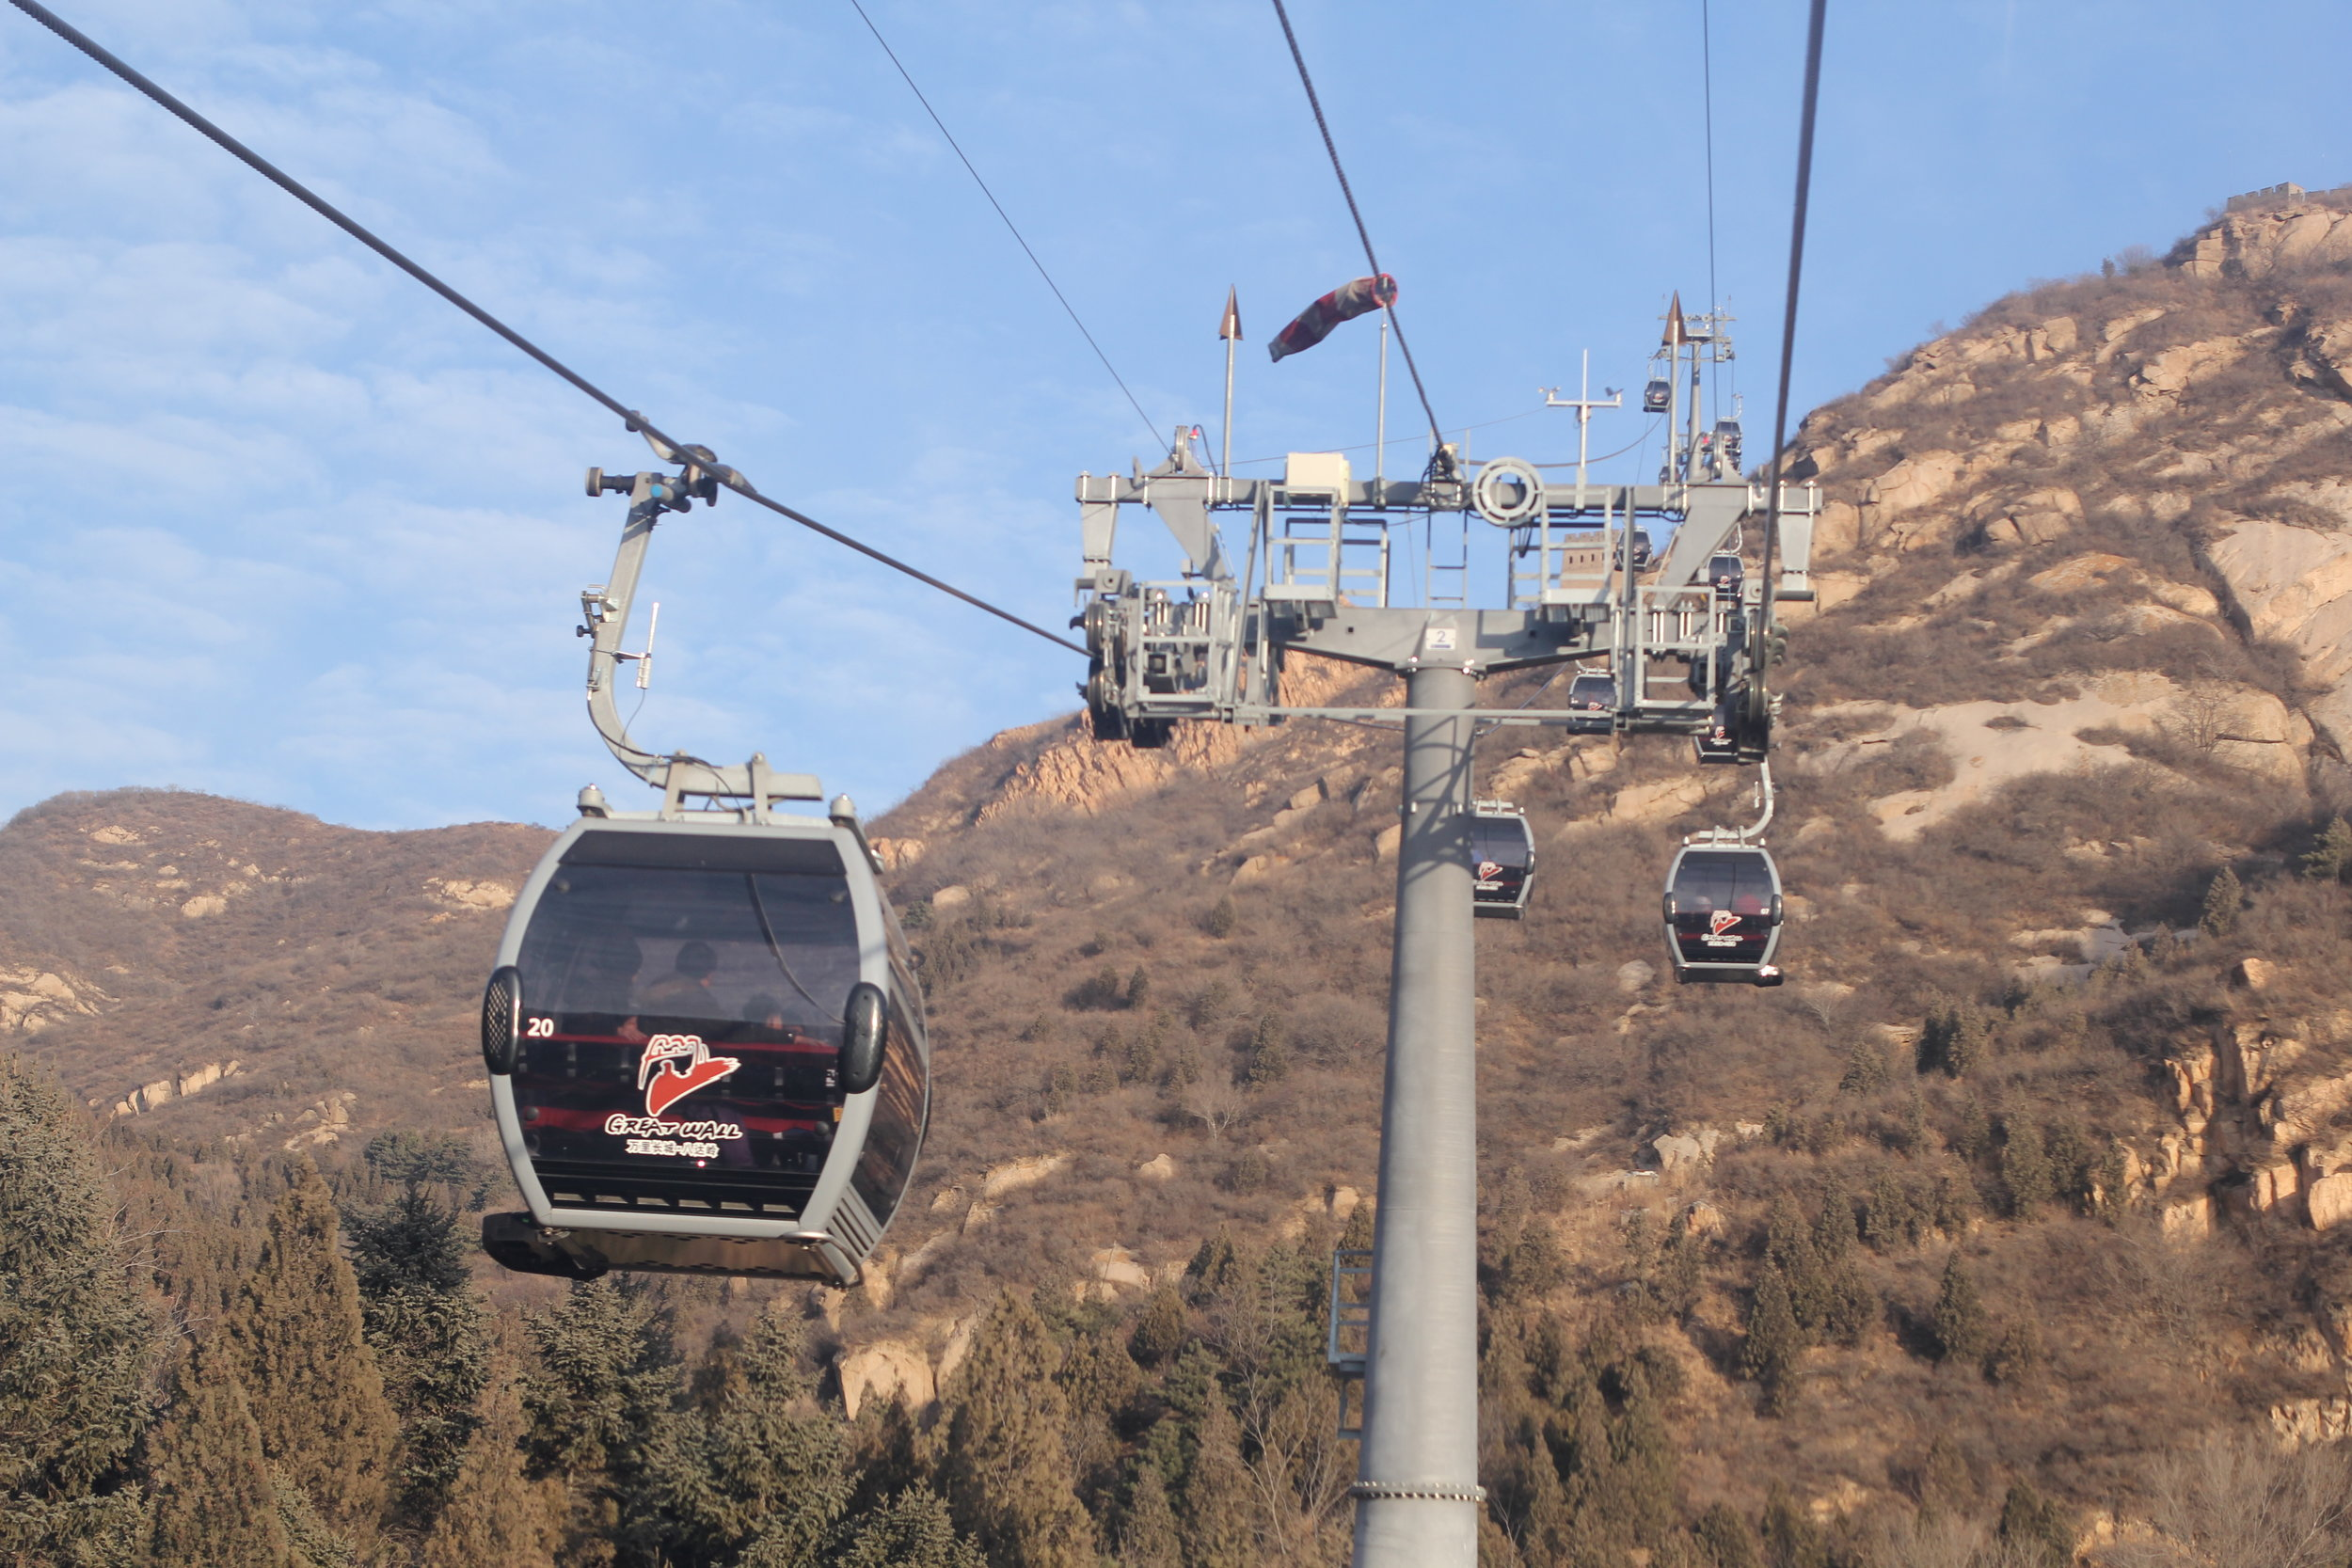 The Great Wall of China Lift